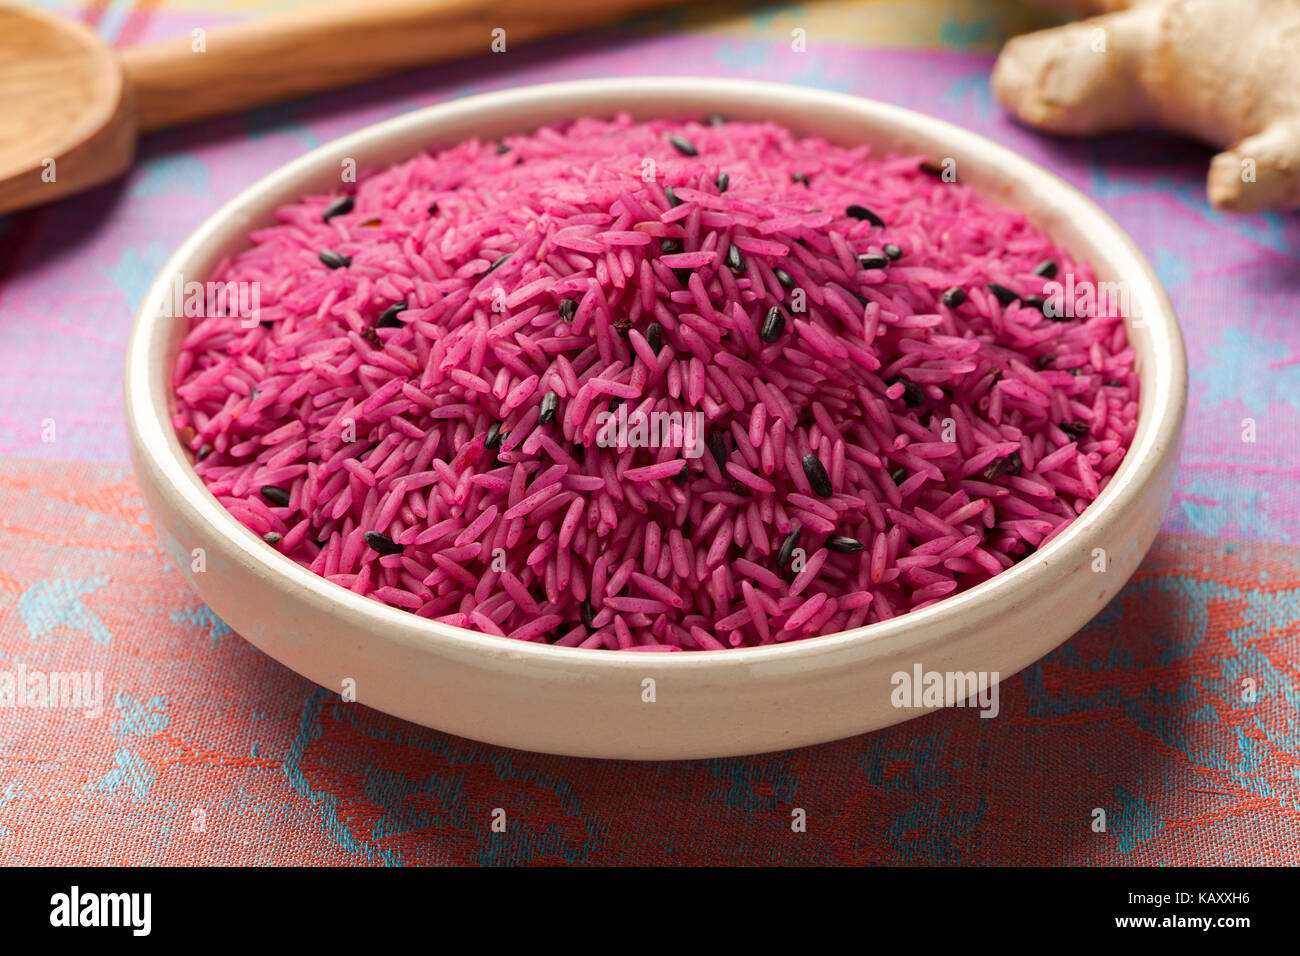 Bowl with red organic uncooked indian rice - Stock Image